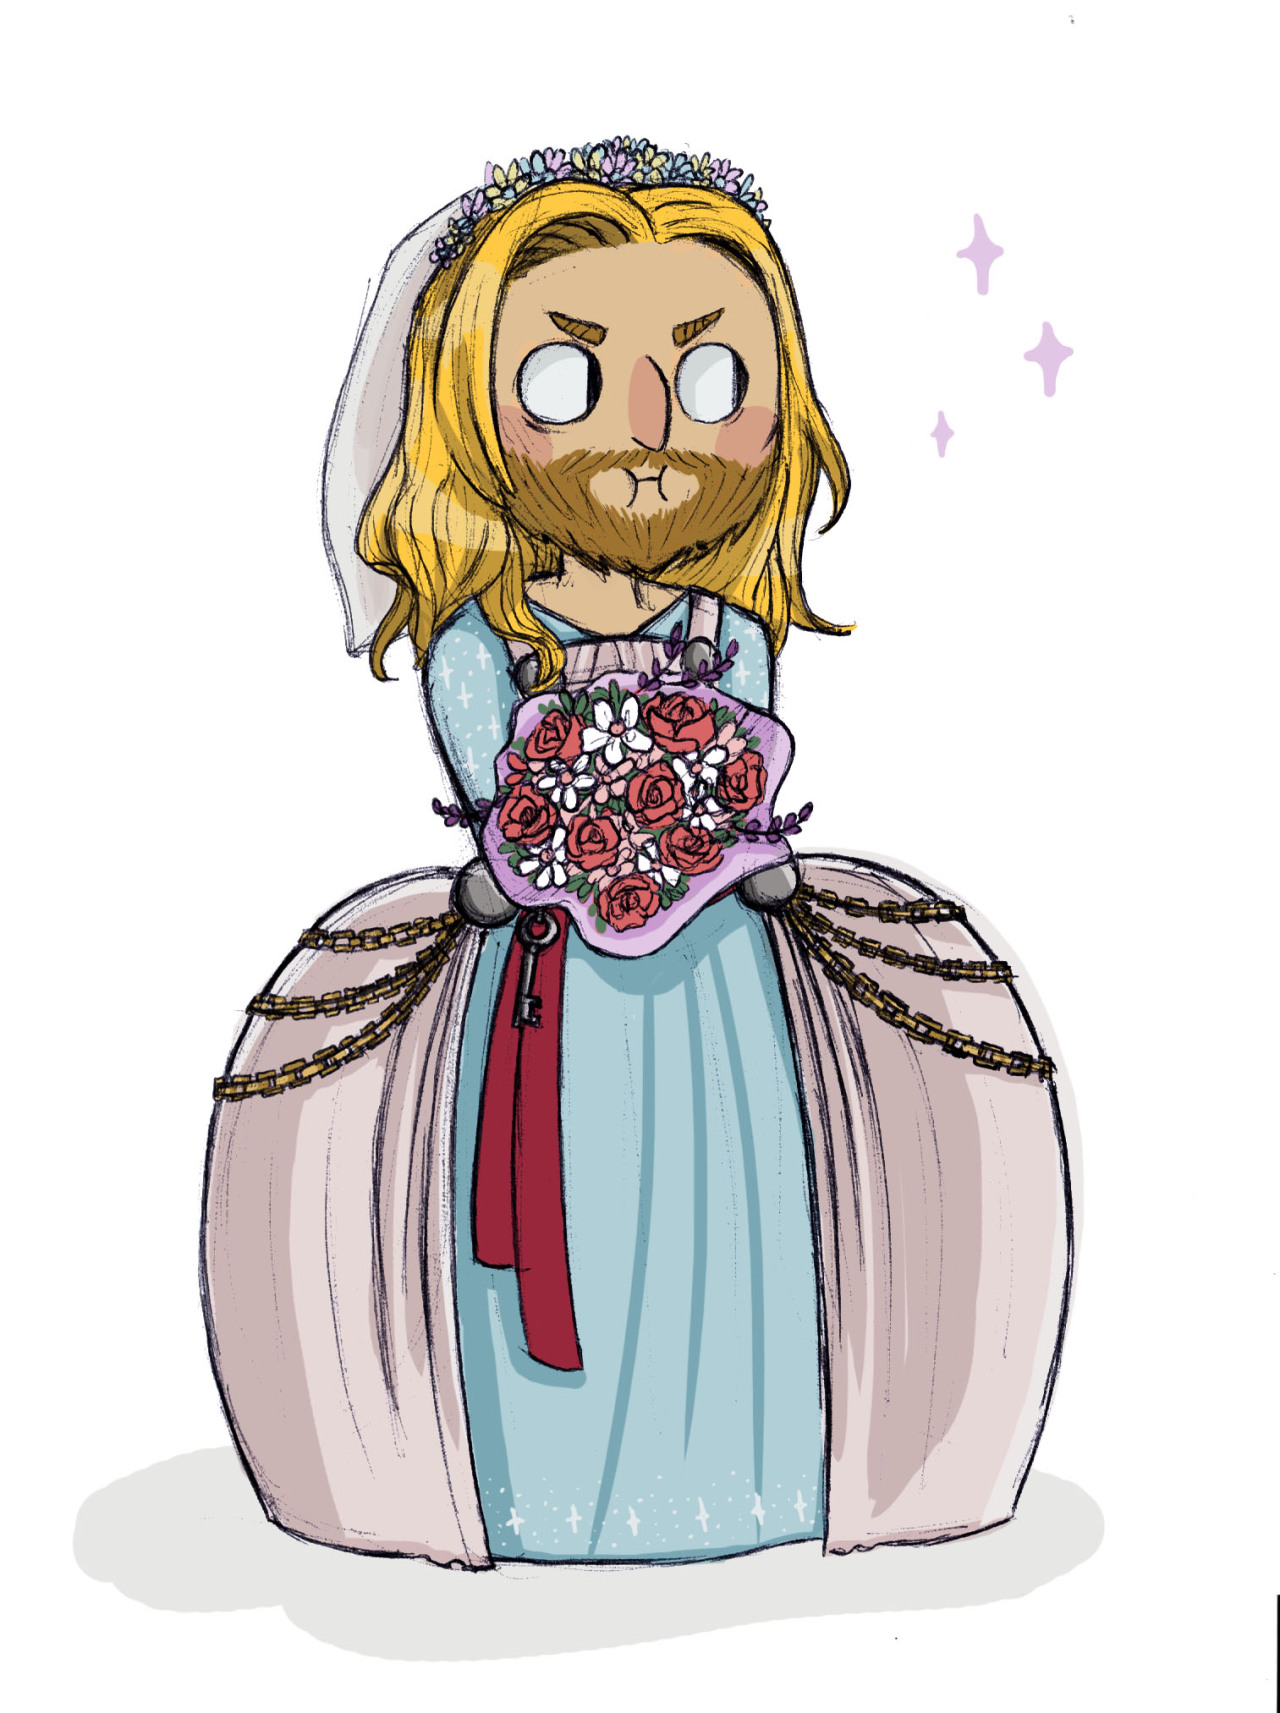 Drawn wedding dress thor And BUT I I story